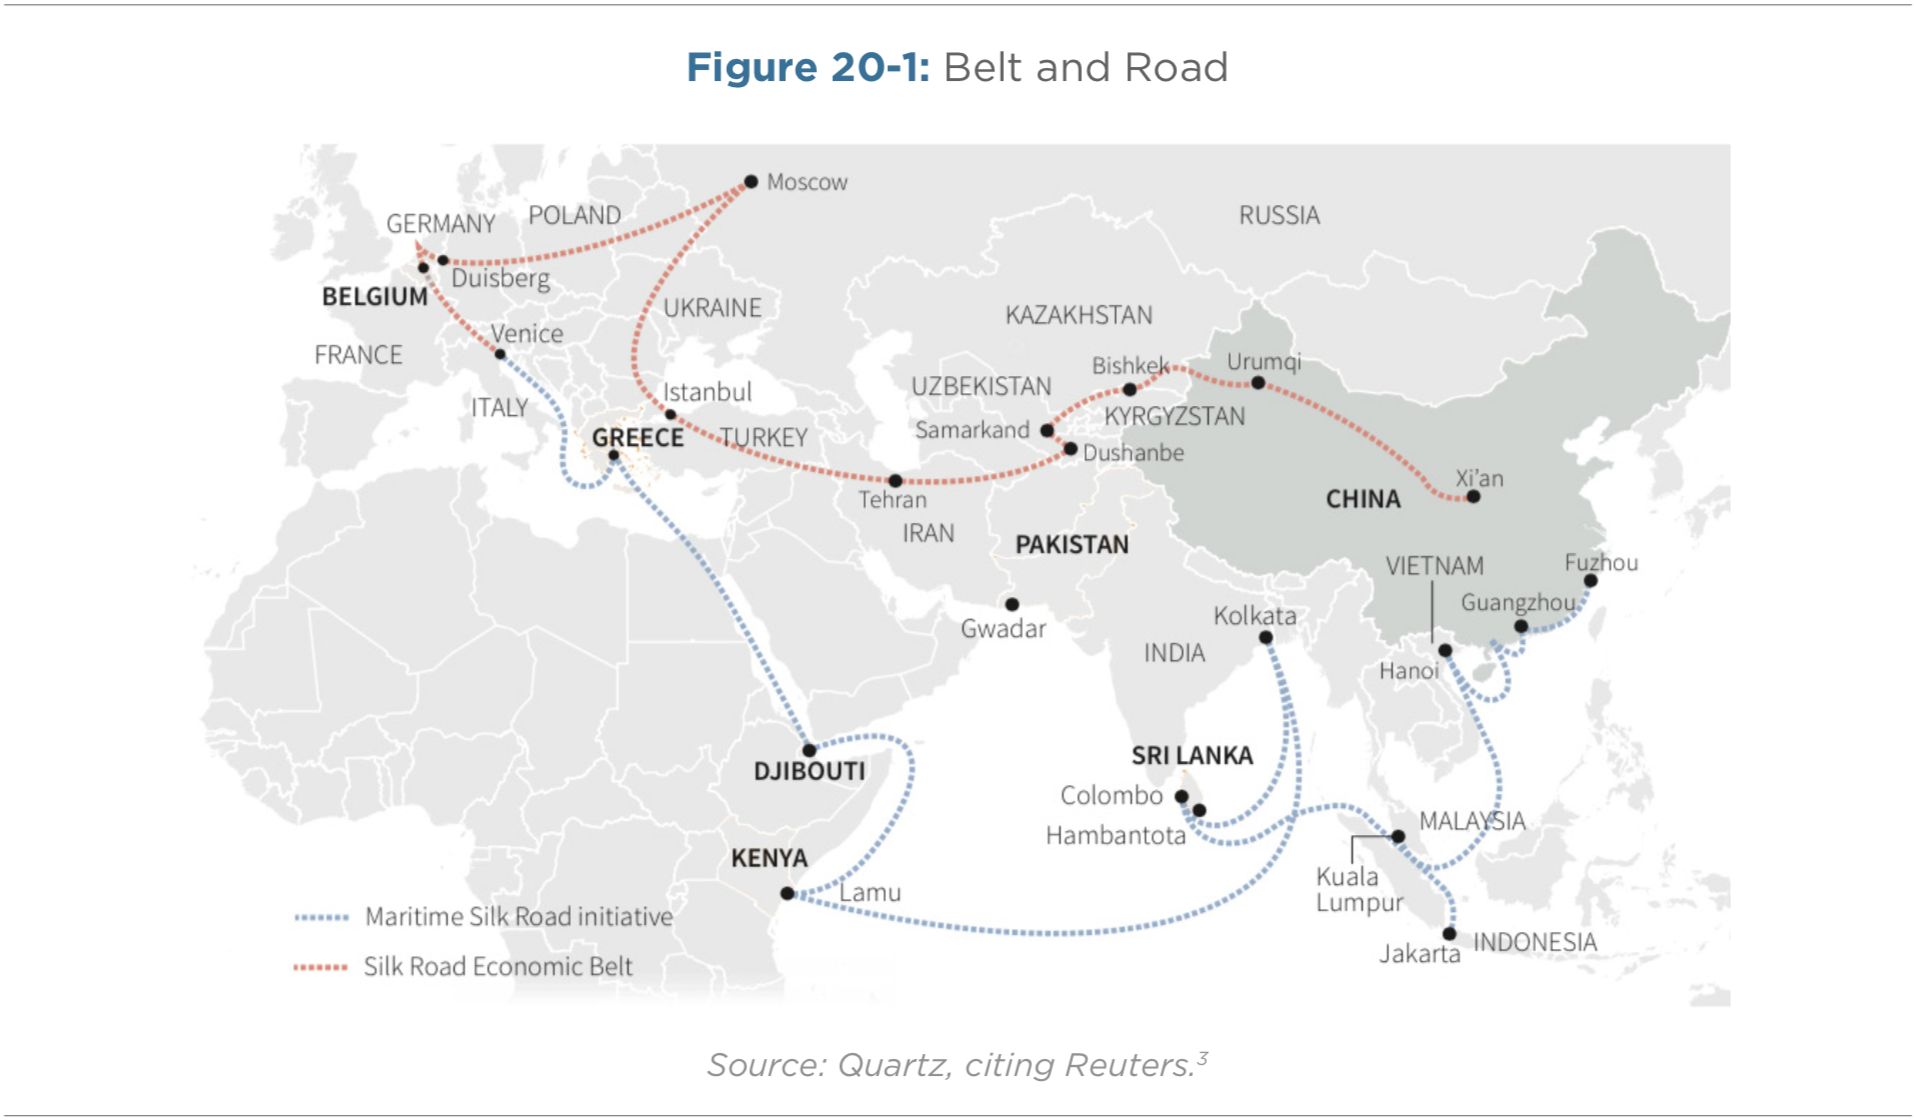 Figure 20-1: Belt and Road